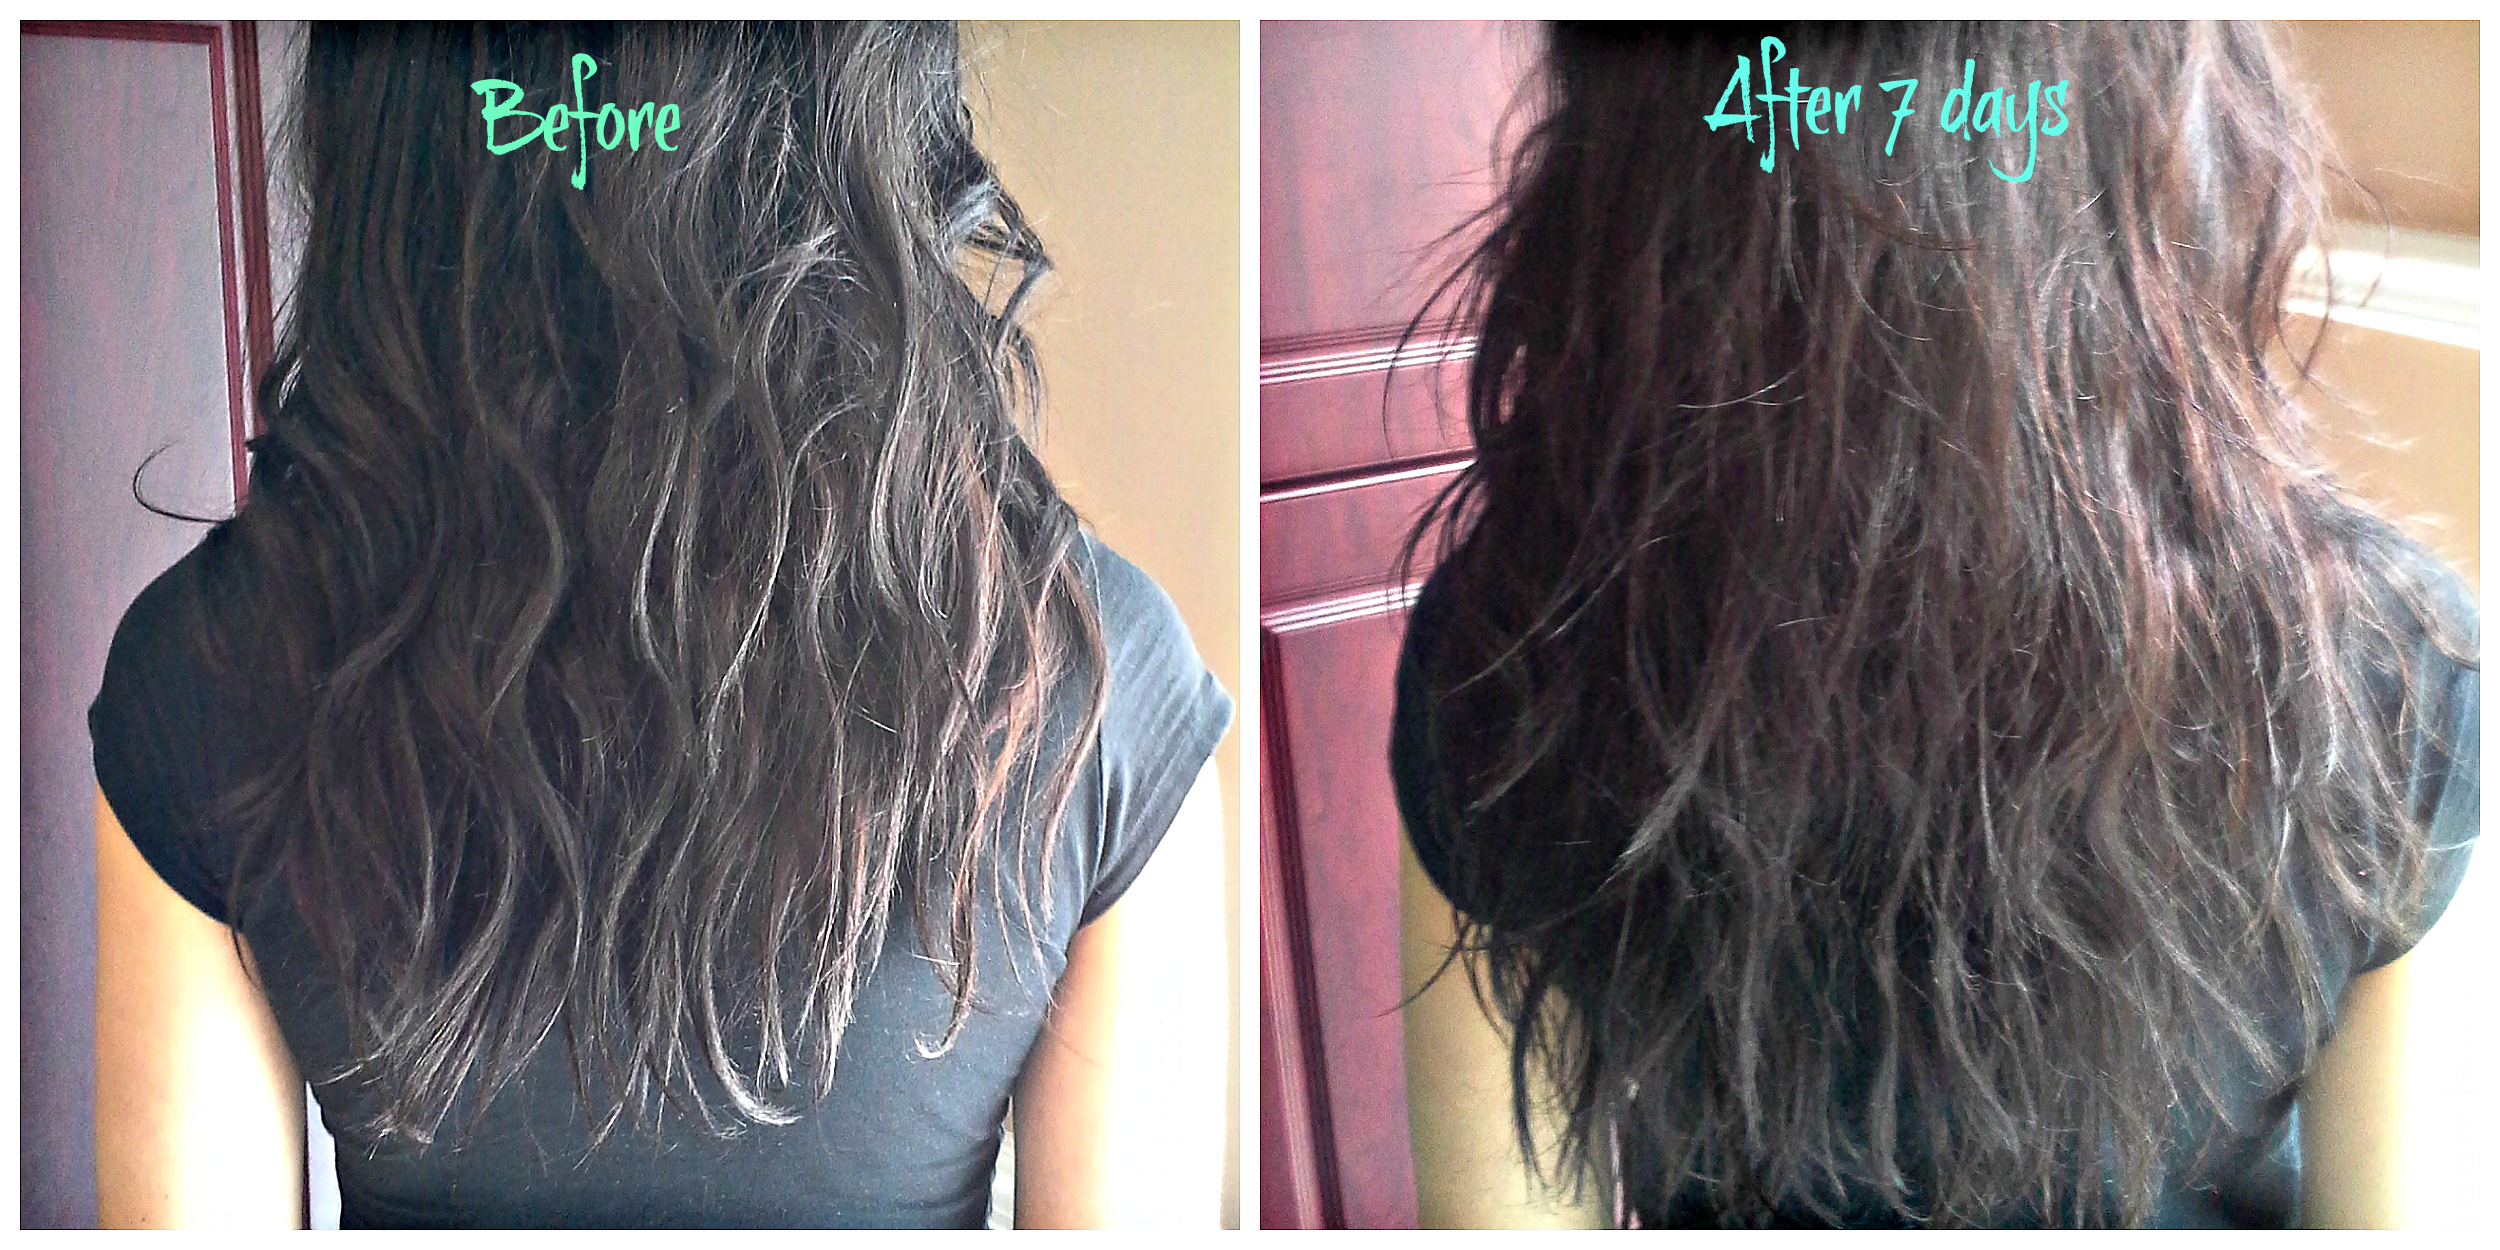 Biotin Hair Growth Biotin Hair Growth Results After 7 Months